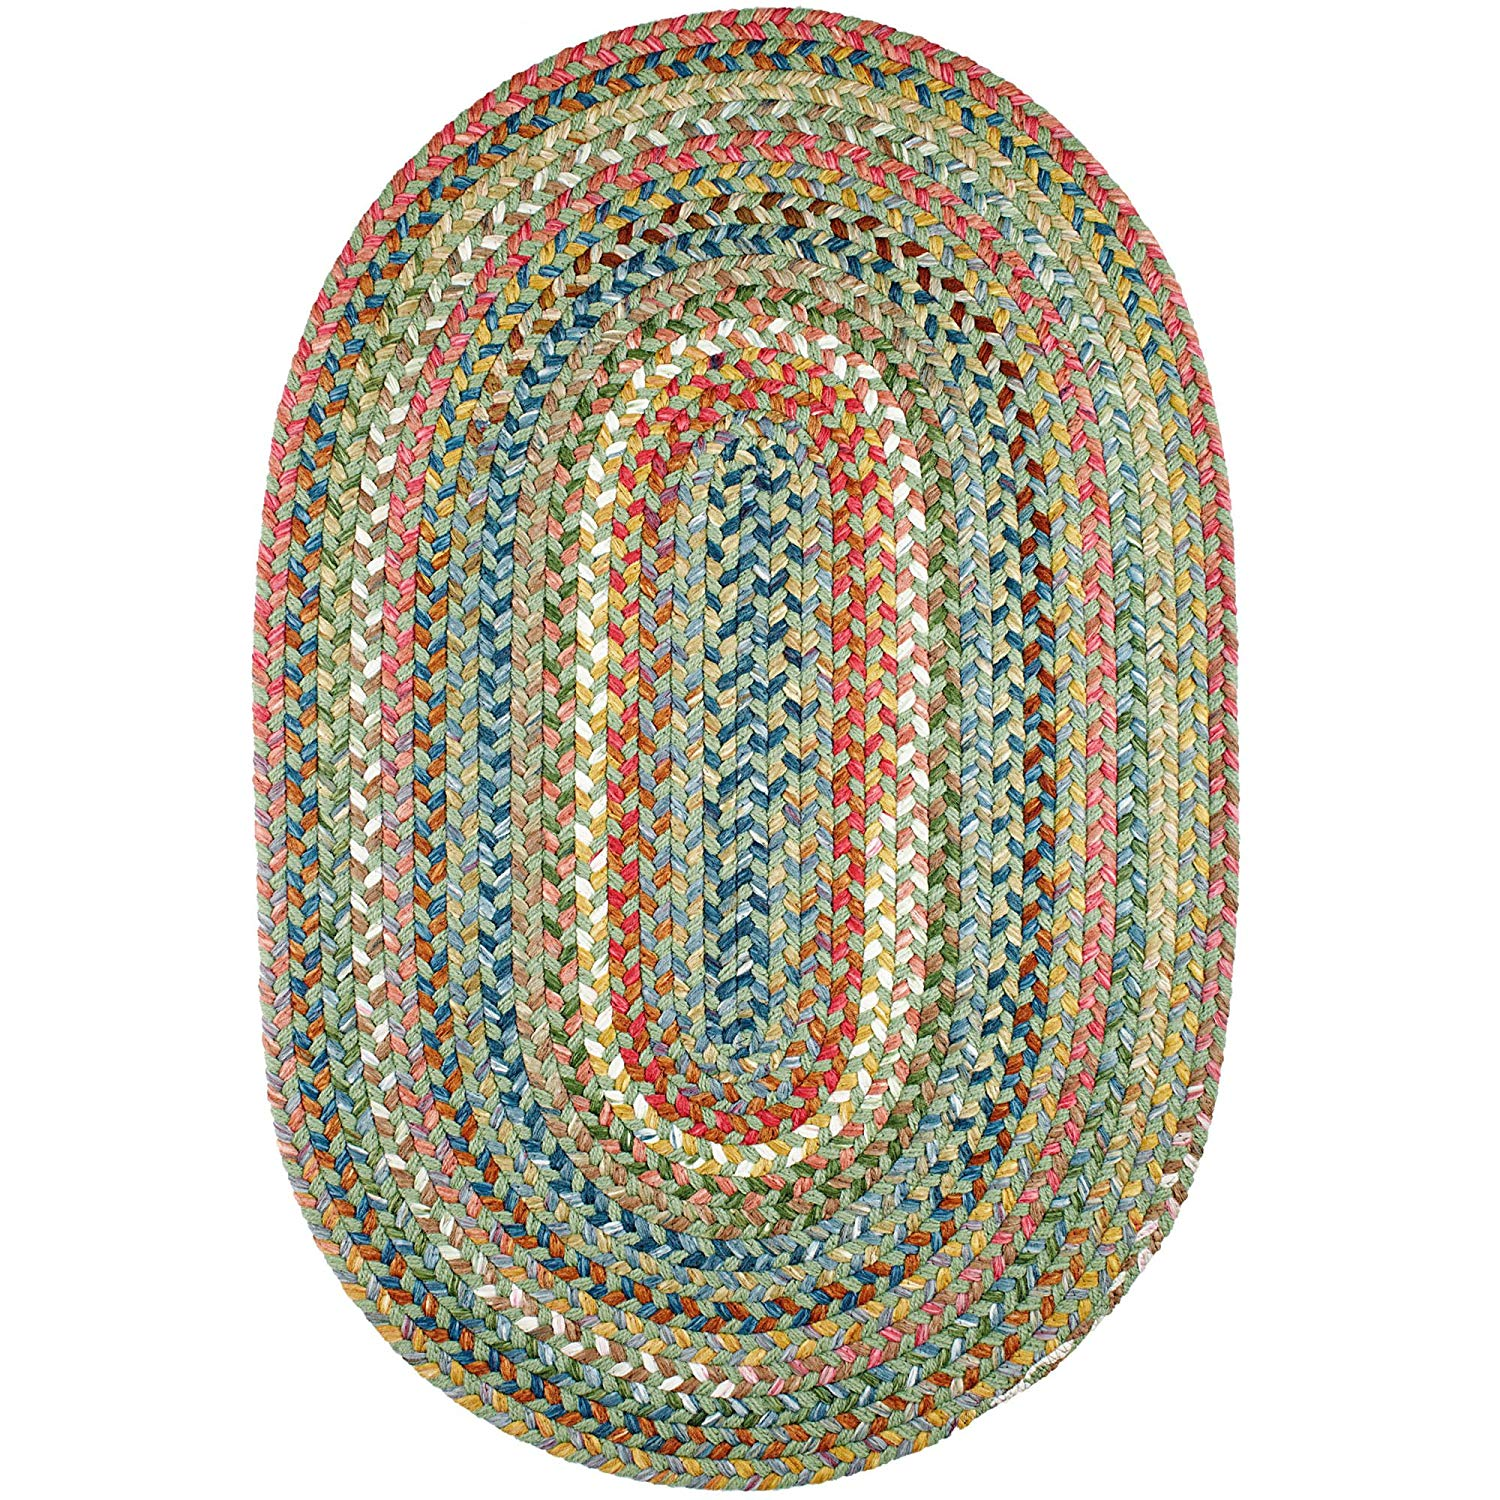 Super Area Rugs Gemstone Textured Braided Rug Indoor/Outdoor Rug Durable Green Kitchen Carpet, 5' X 8' Oval